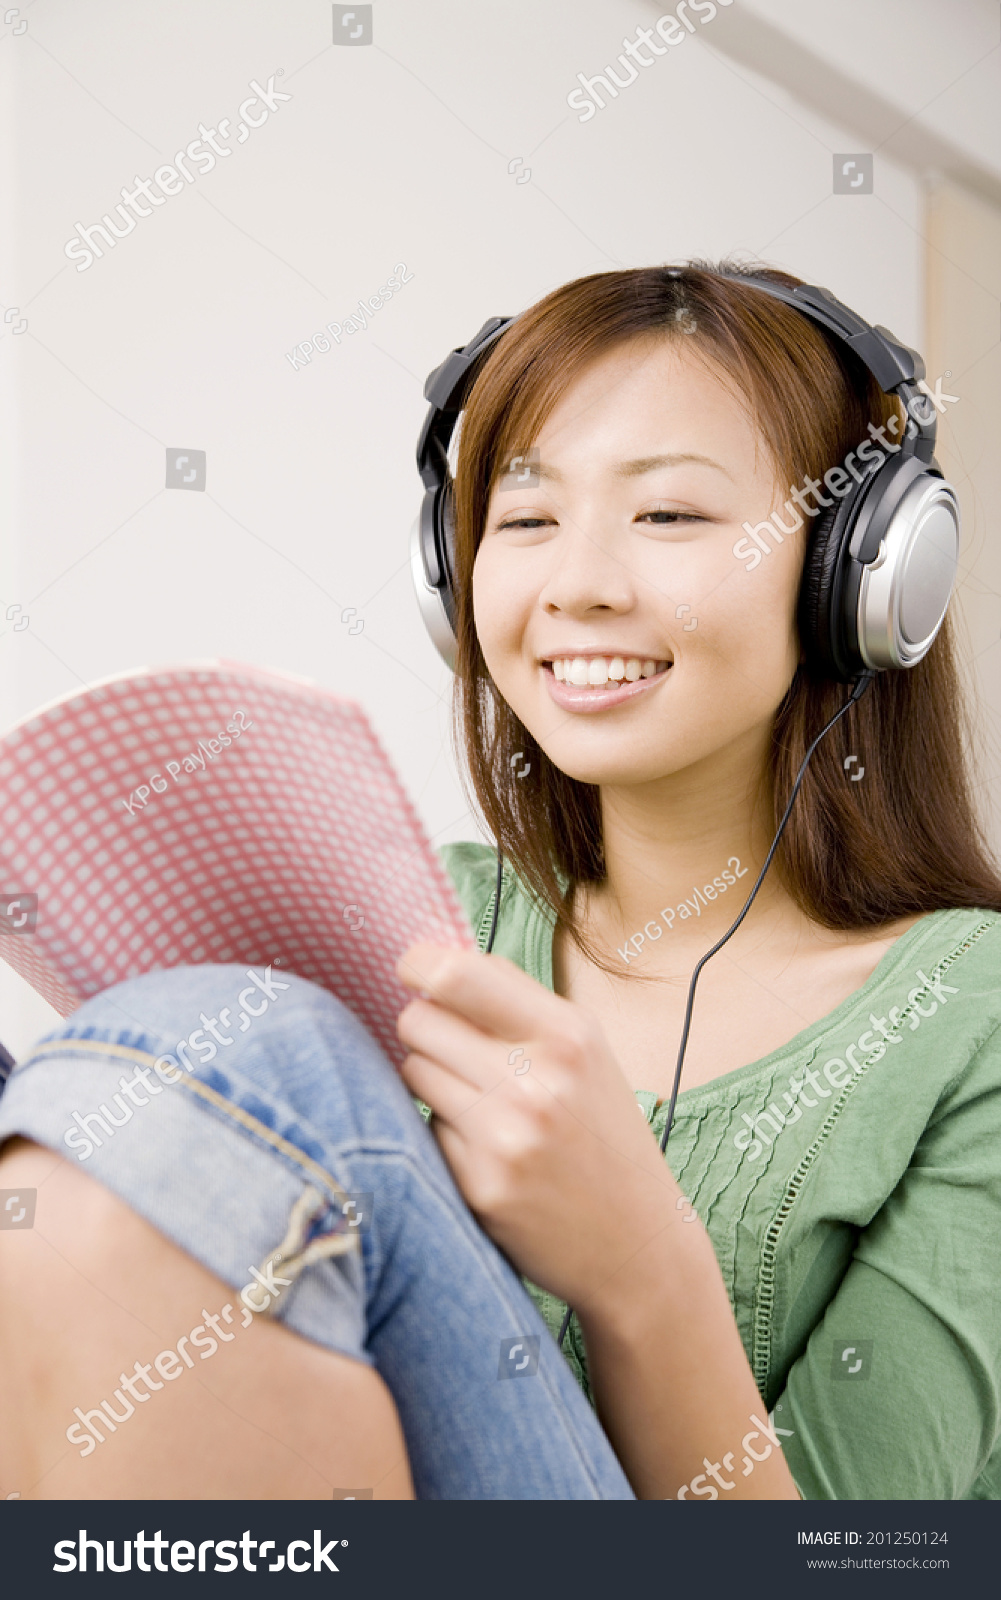 Woman Listening Music On Headphones Stock Photo 201250124 ...